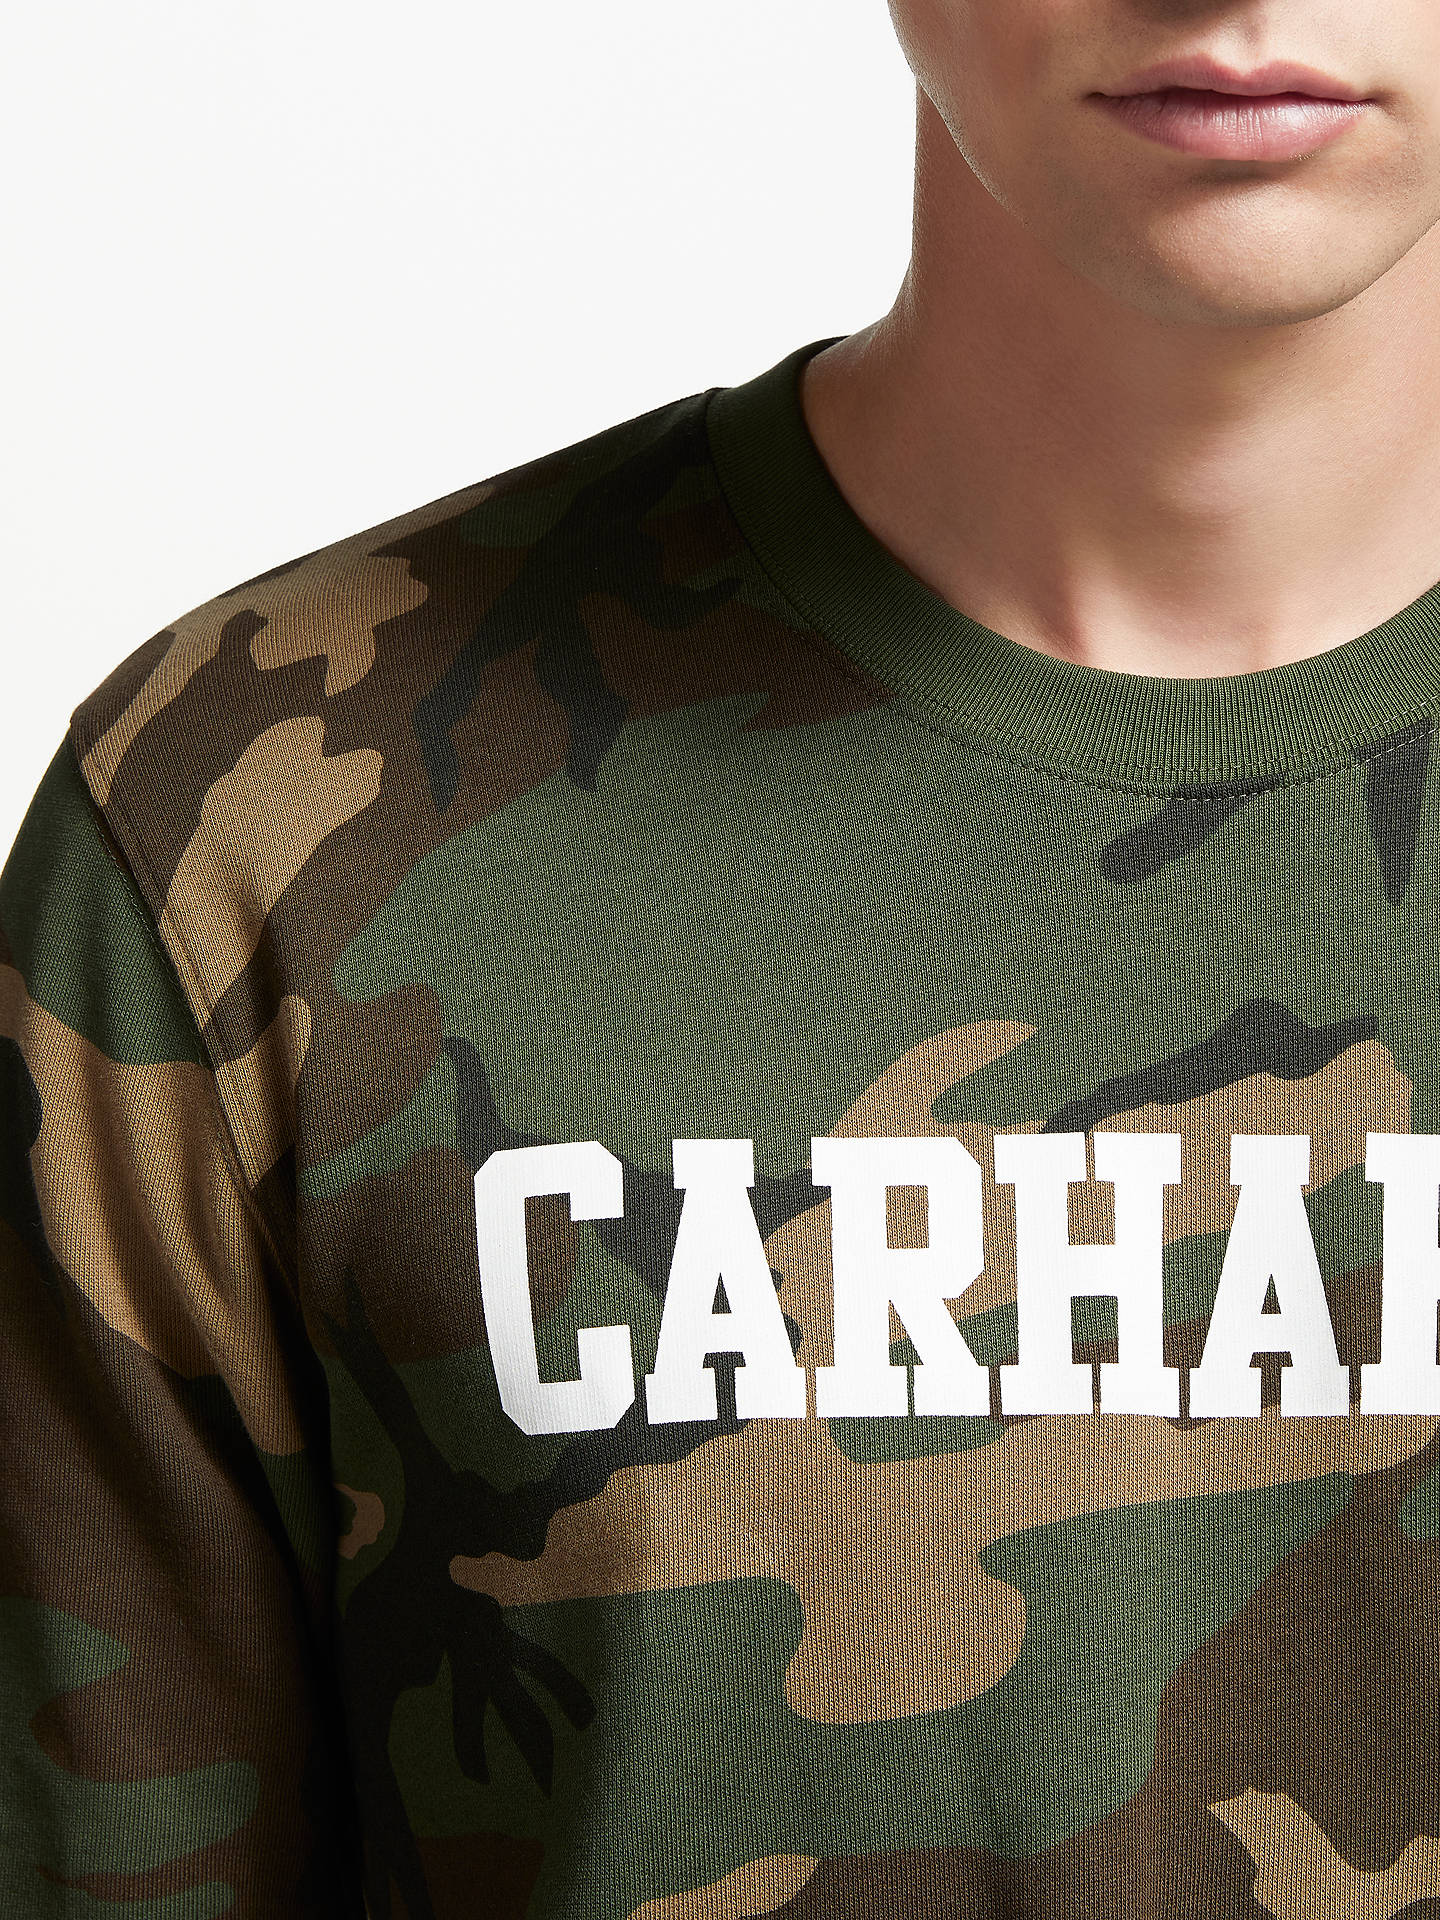 Buy Carhartt WIP College Camo Sweatshirt, Camo, M Online at johnlewis.com